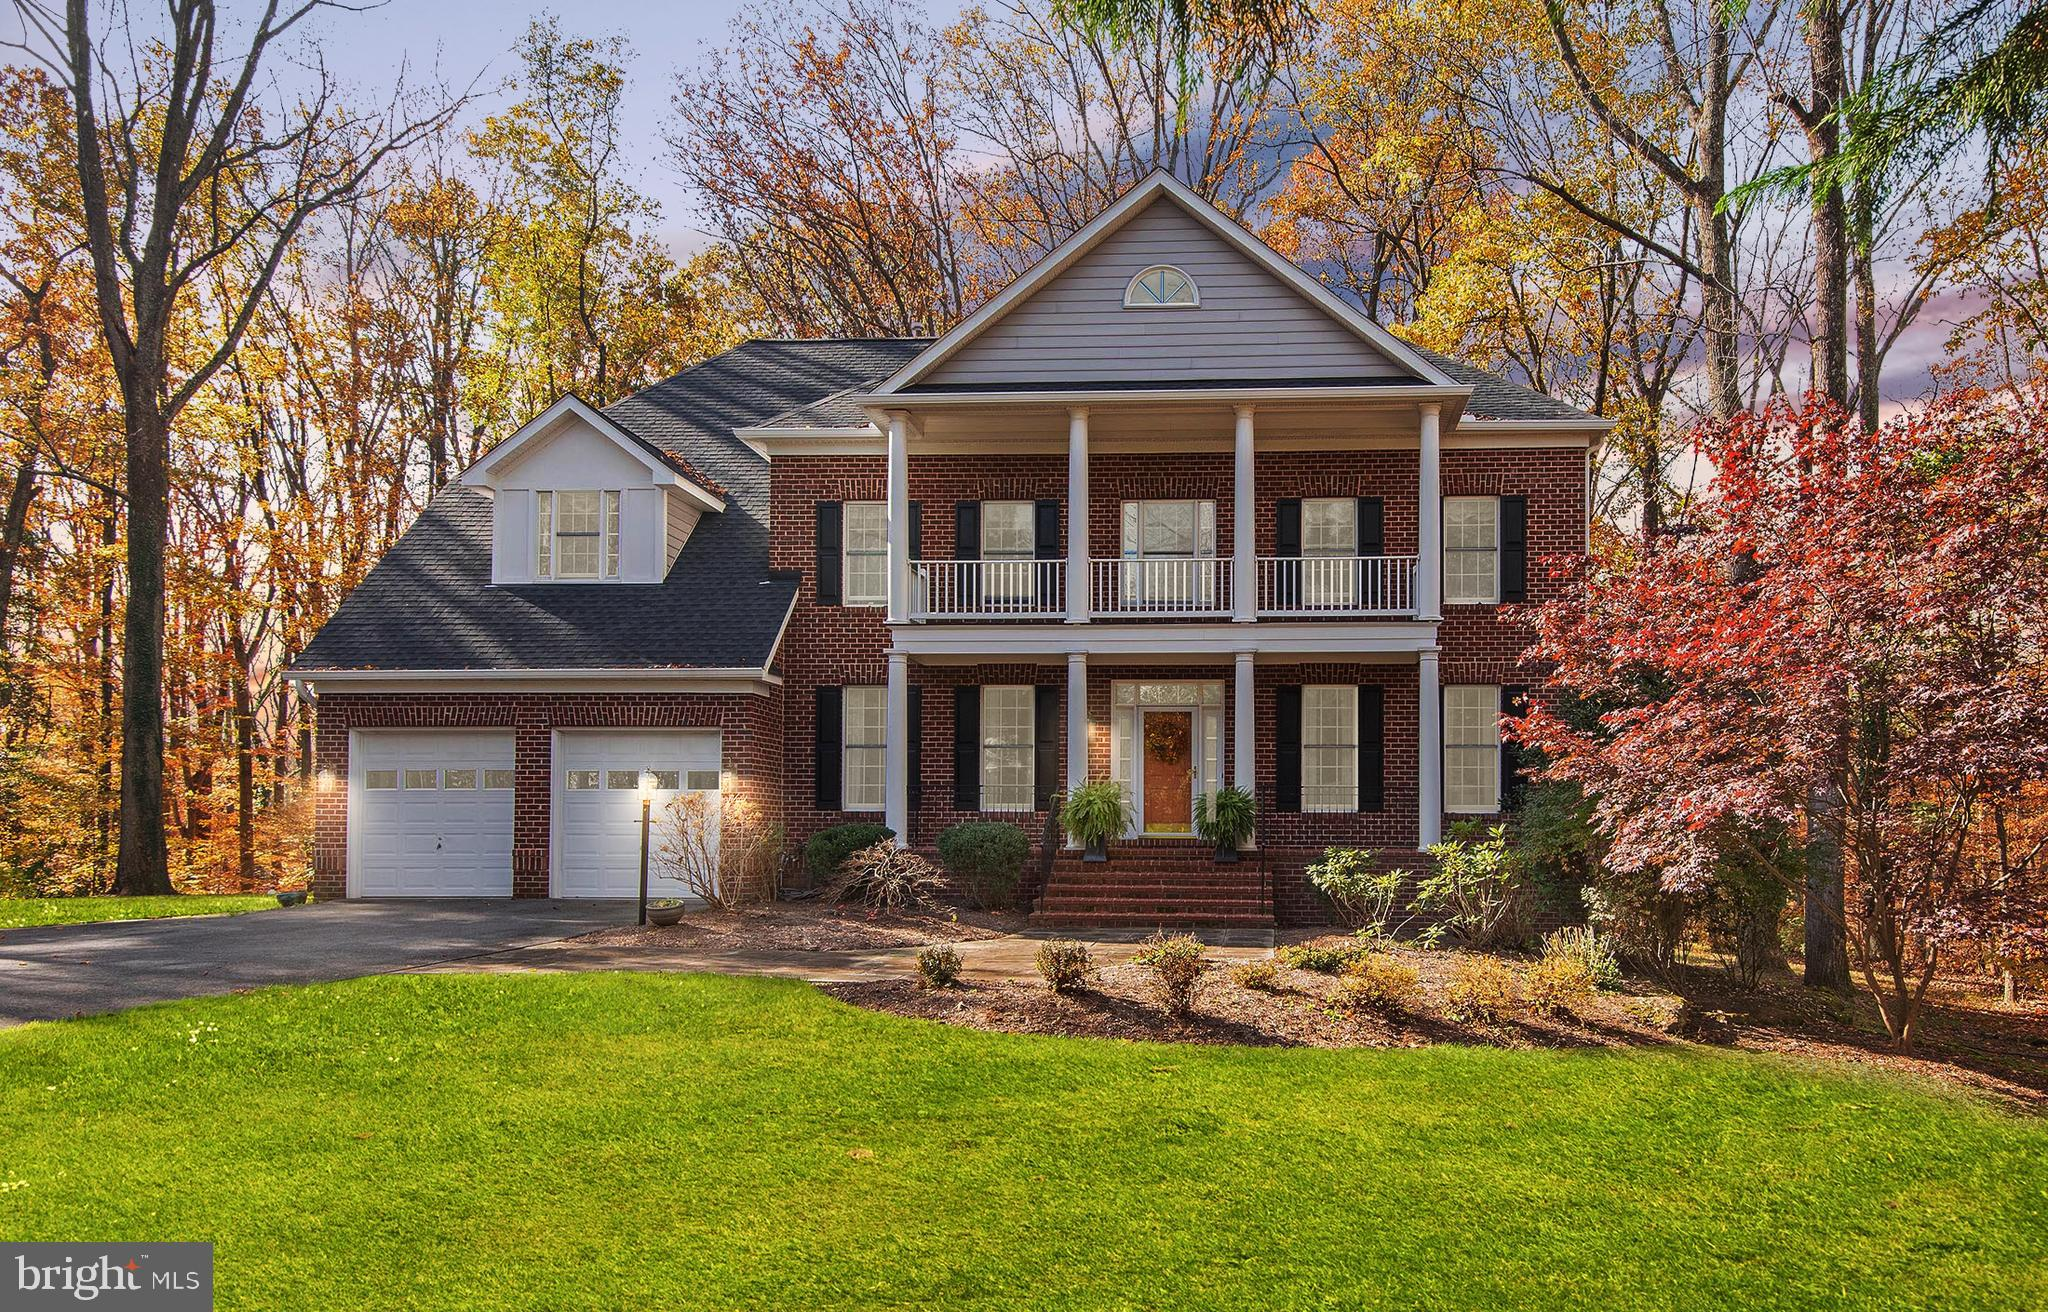 1707 Mansion Ridge Rd, Annapolis, MD, 21401